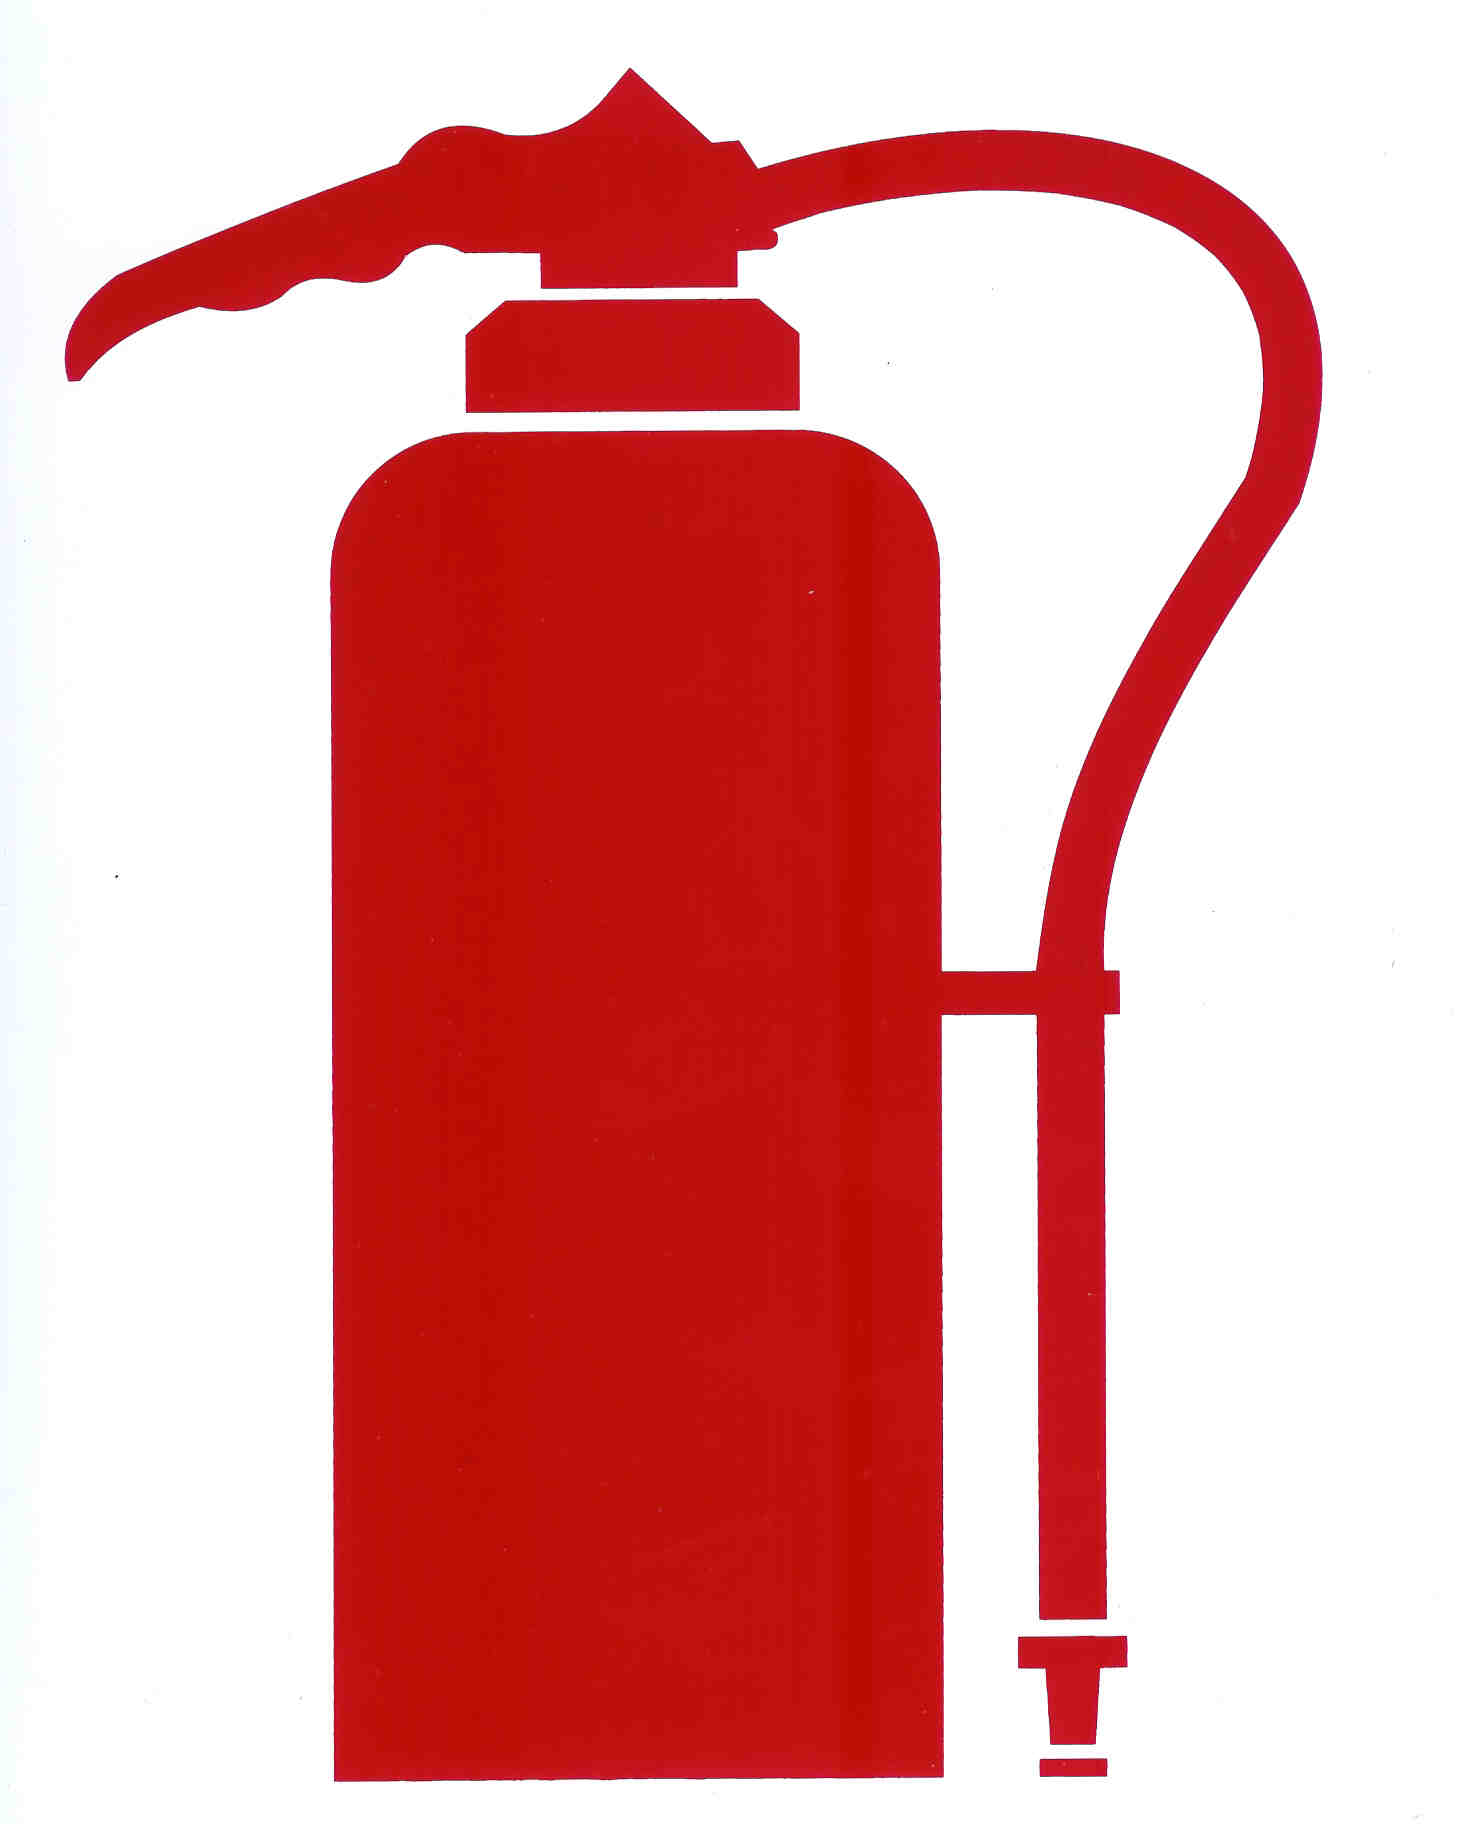 Fire Extinguisher Clipart - .